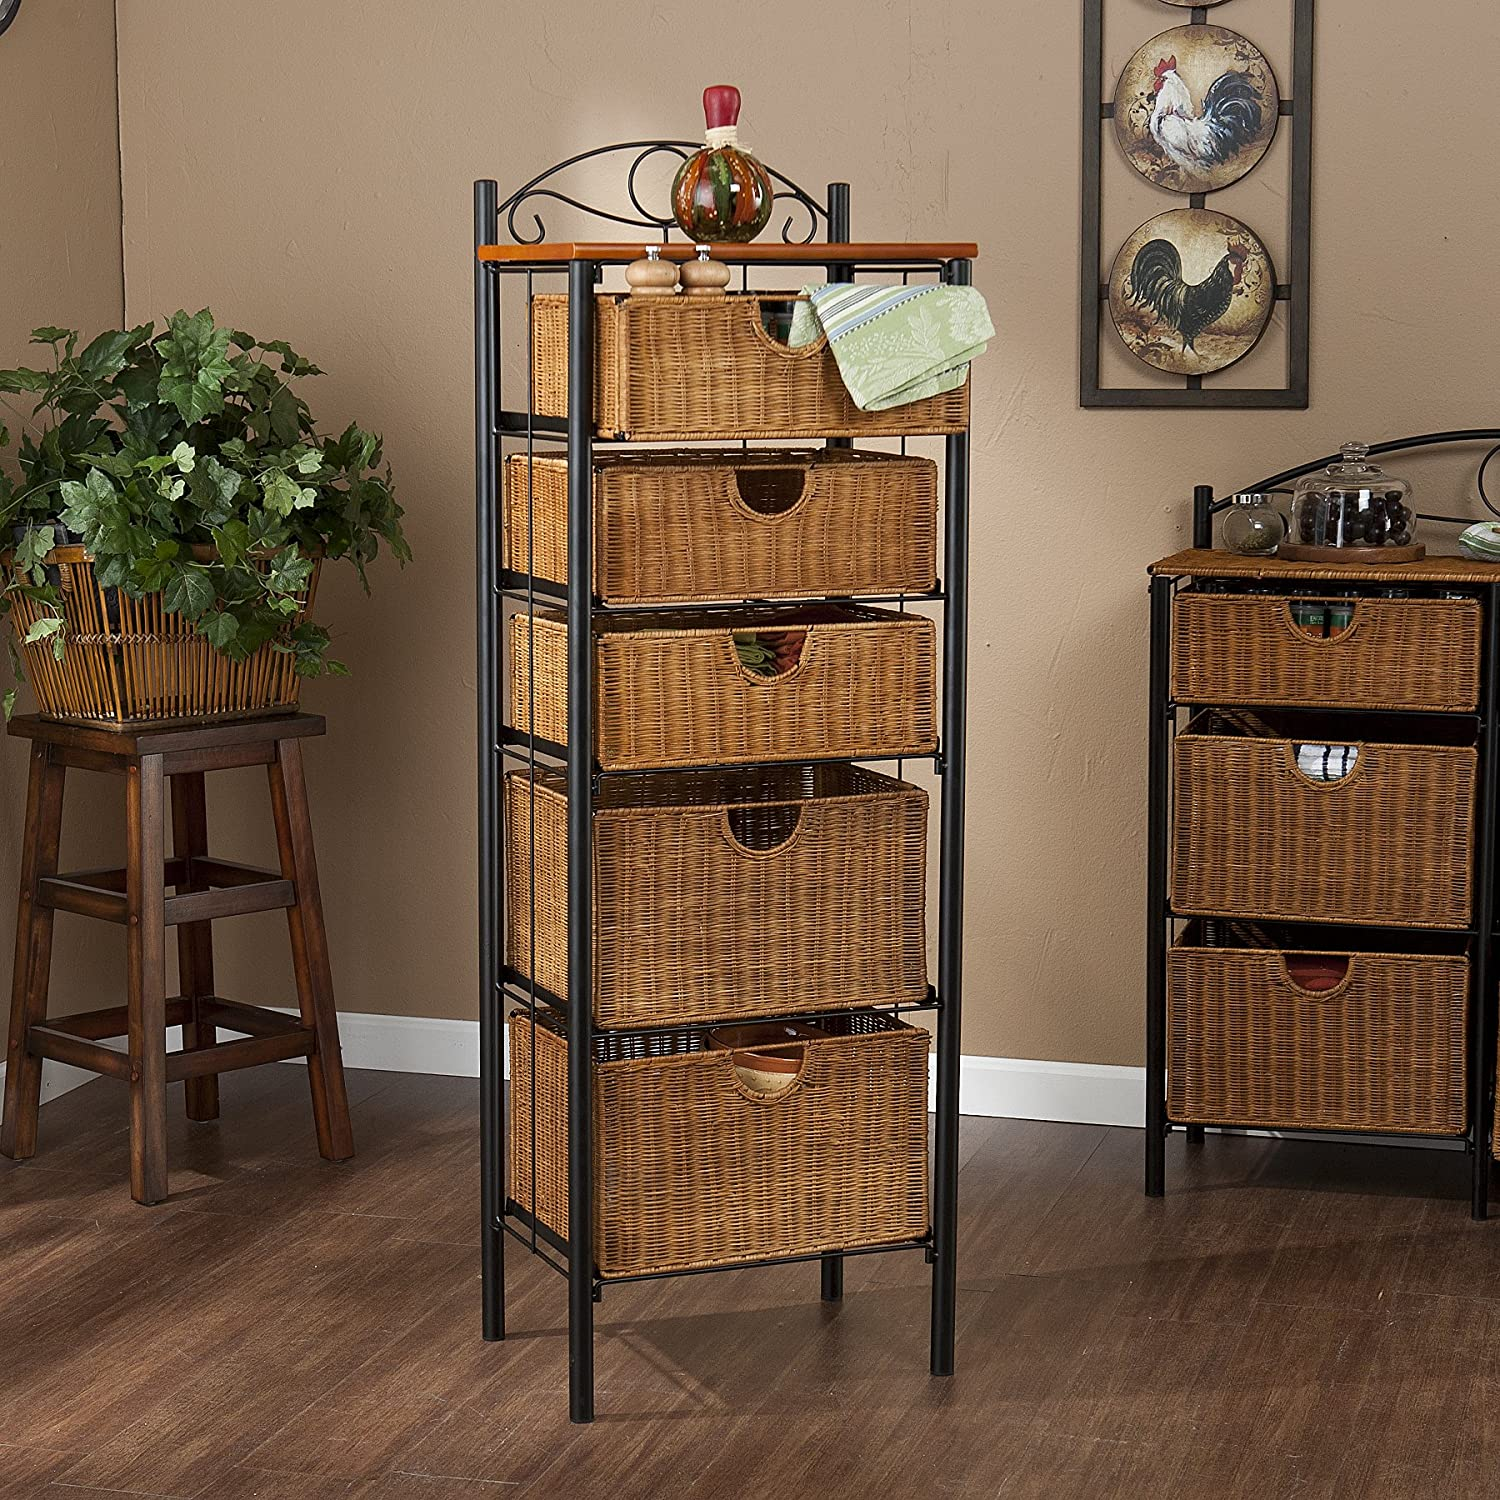 New Amazon.com: Iron/Wicker Five Drawer Storage Unit: Home & Kitchen DW59